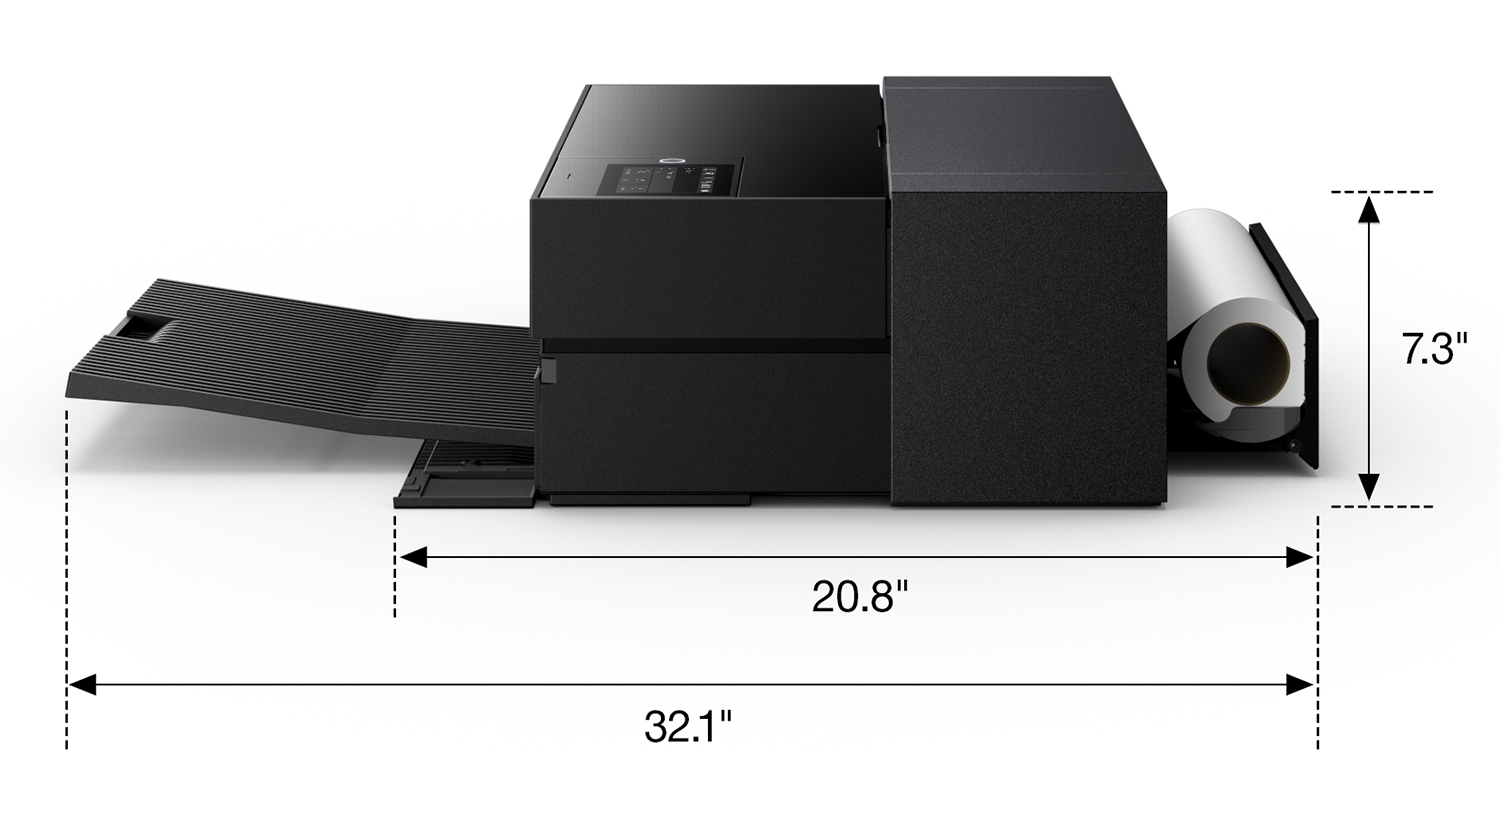 Photo of Epson P700 dimensions